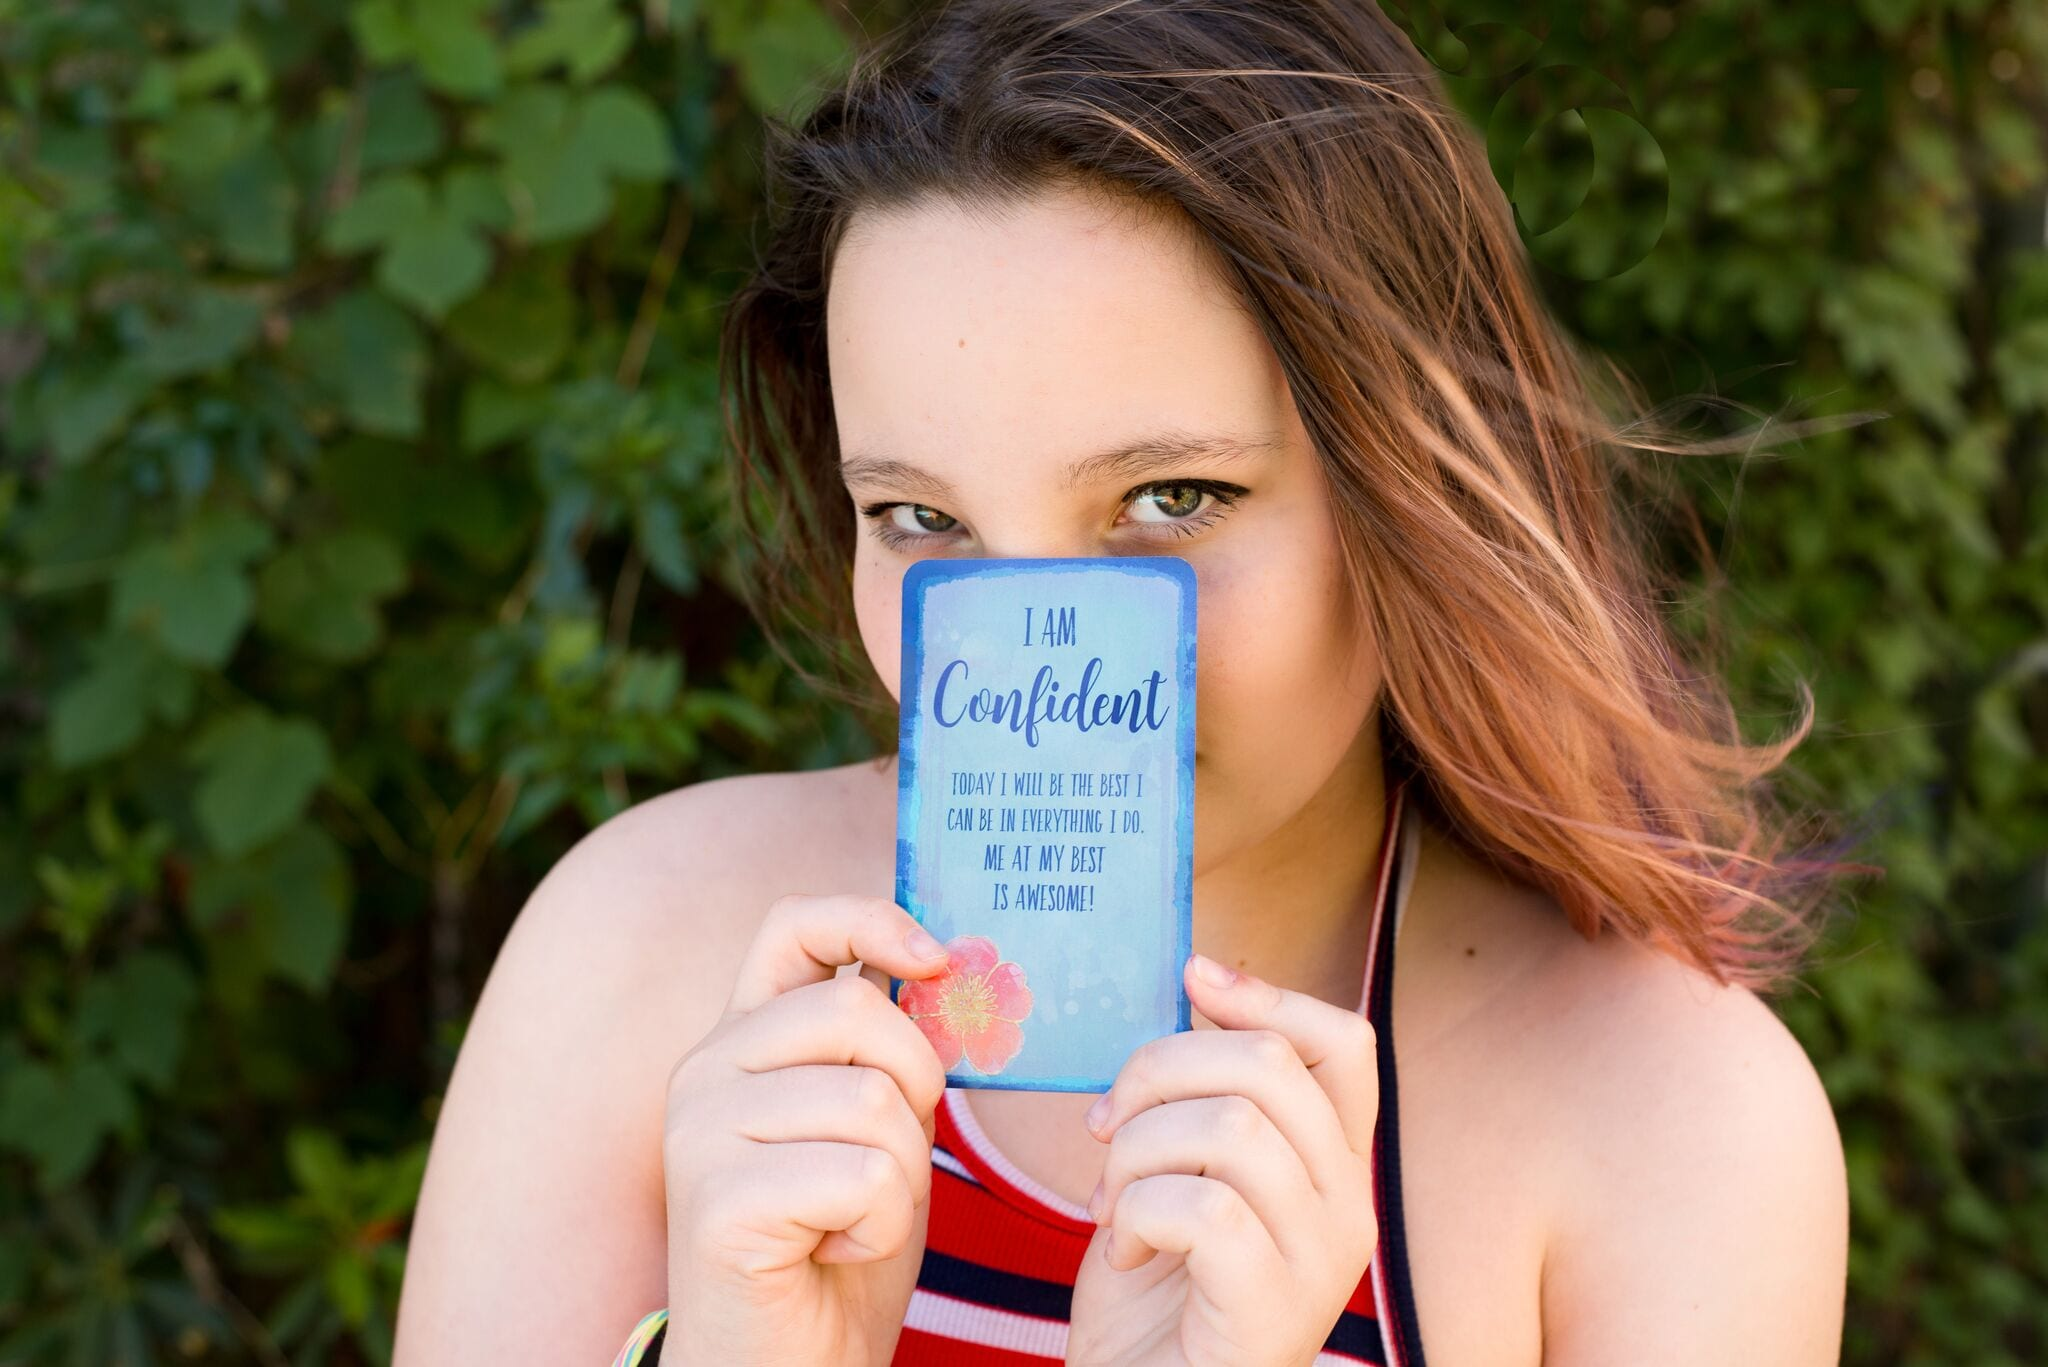 """I AM Confident. Asher Slocum — A Confident Young Lady, shows today's I AM Affirmation Card: """"Today, I will be the best I can in everything I do. Me at my best is awesome!"""""""